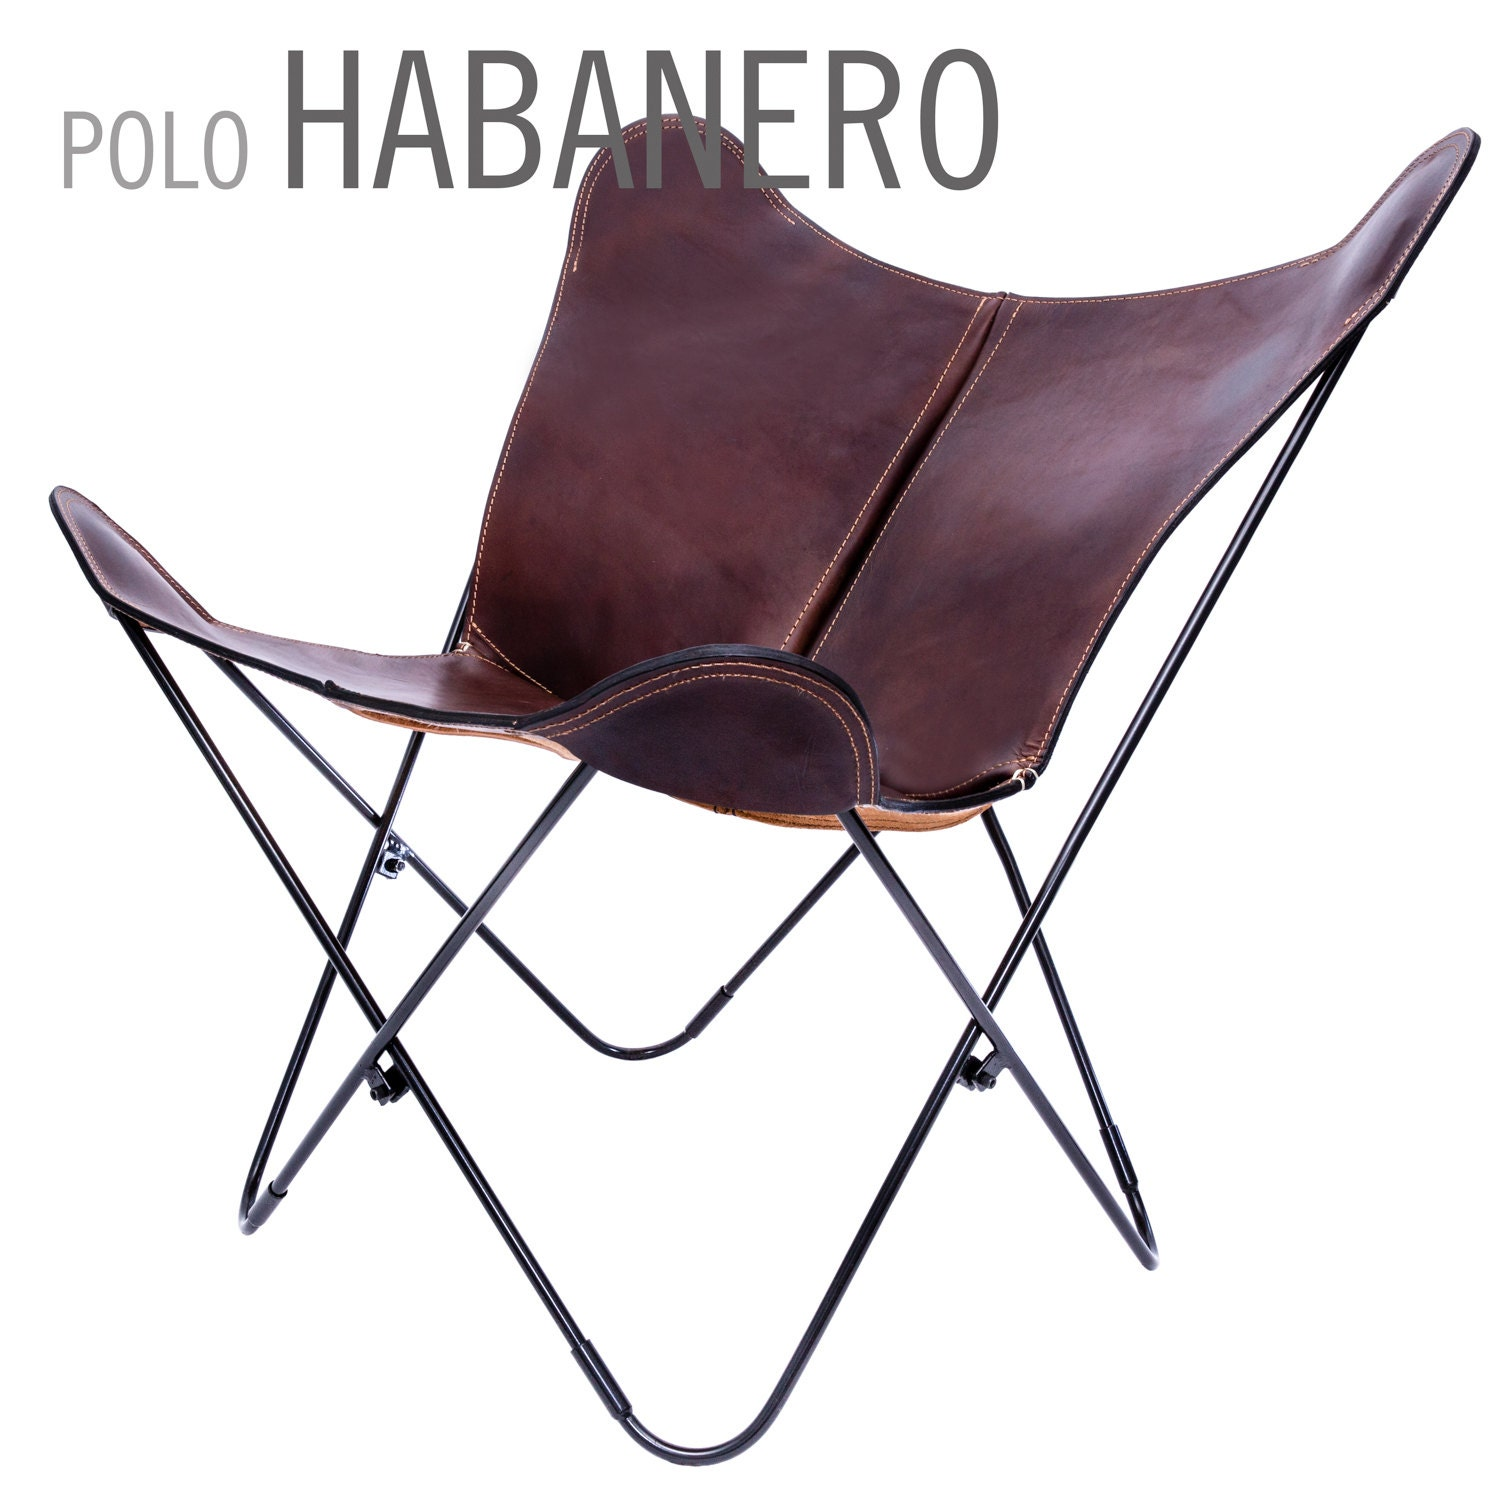 Butterfly chair original - 100 Handcrafted Original Butterfly Chair Polo Leather With Black Frame From Argentina Big Bkf